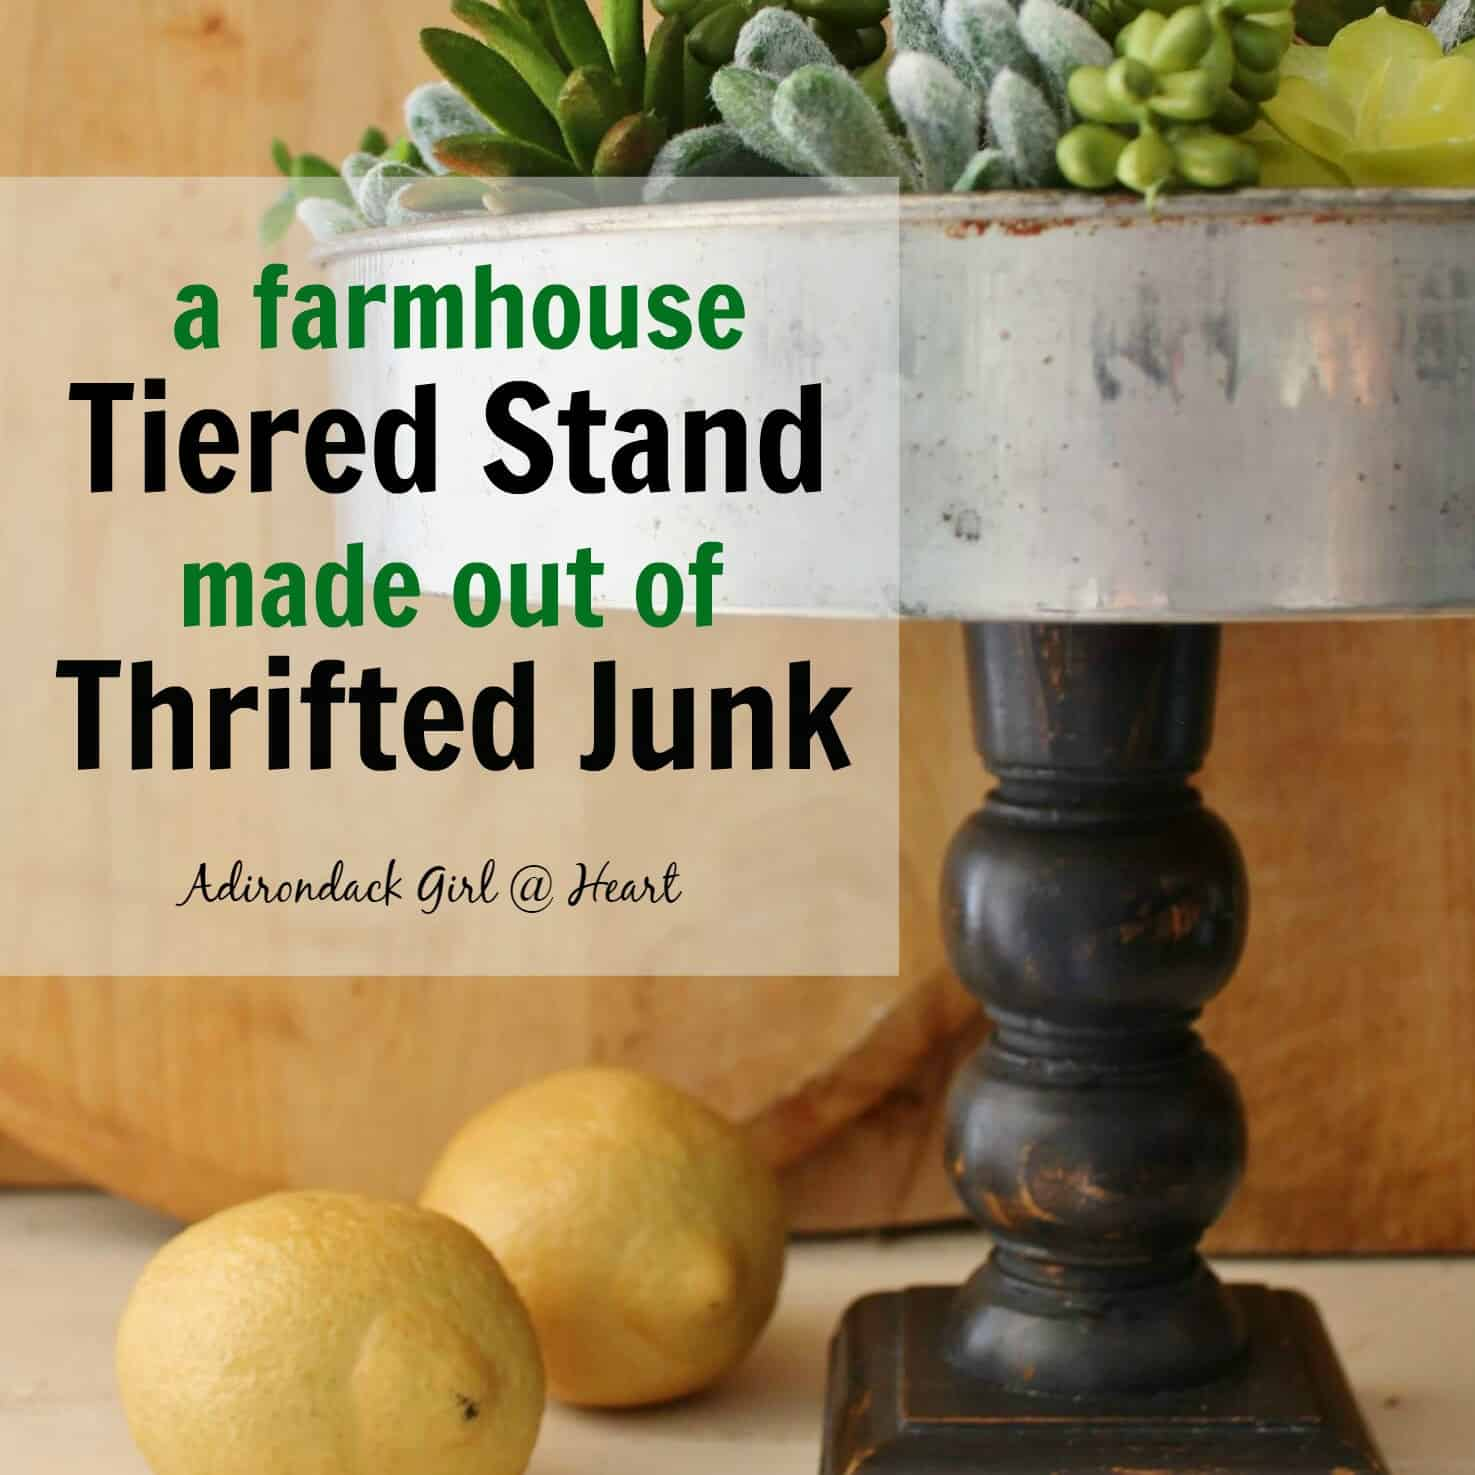 farmhouse tiered stand